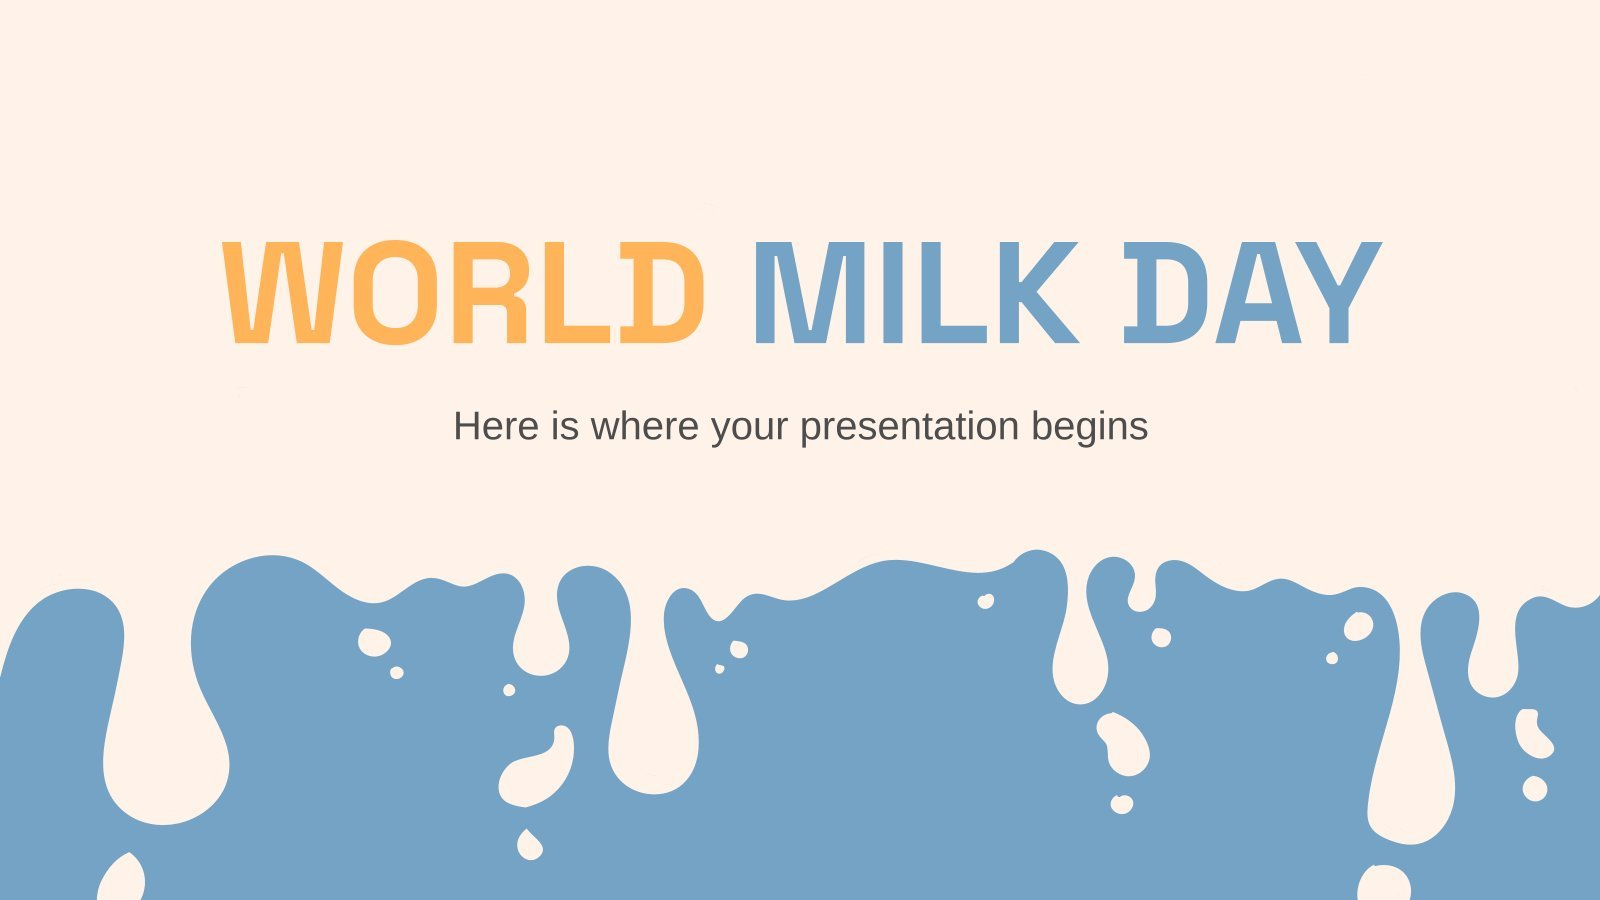 World Milk Day presentation template